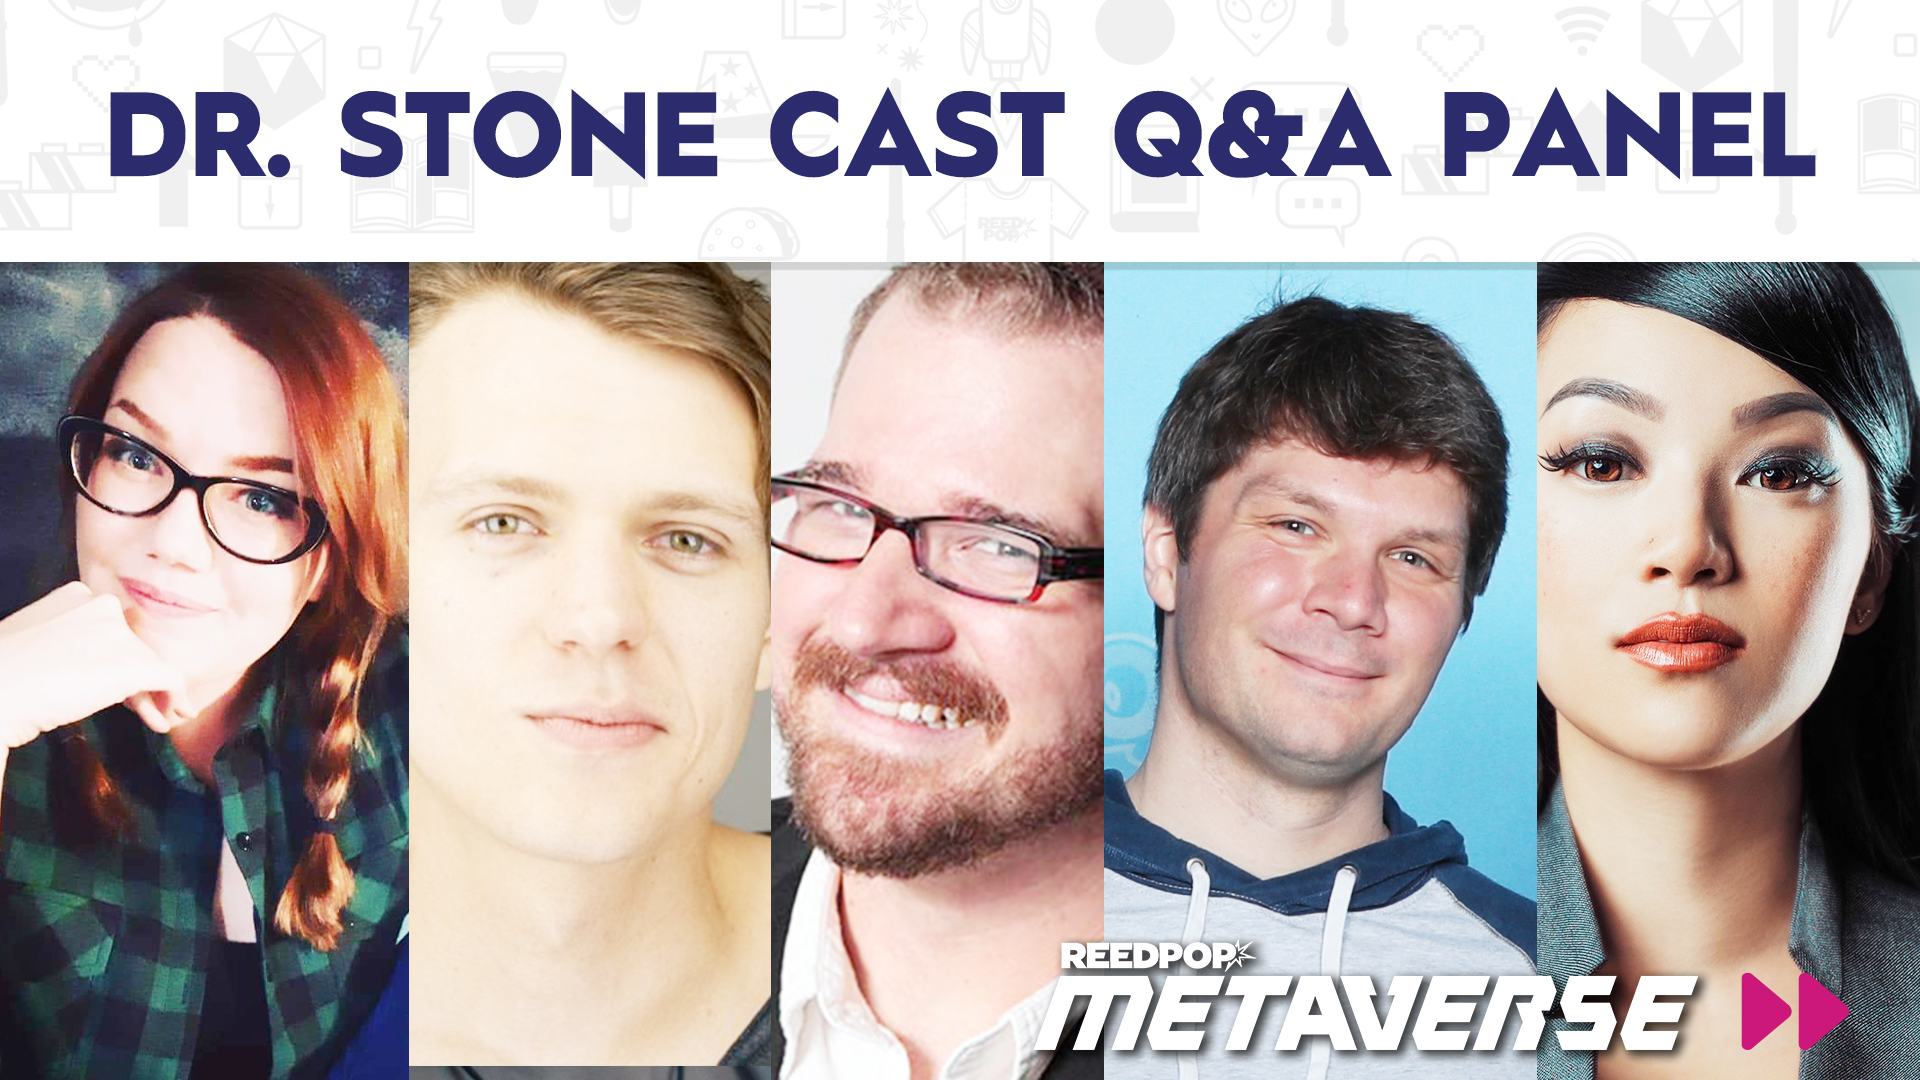 Image for Dr. Stone Cast Q&A Panel